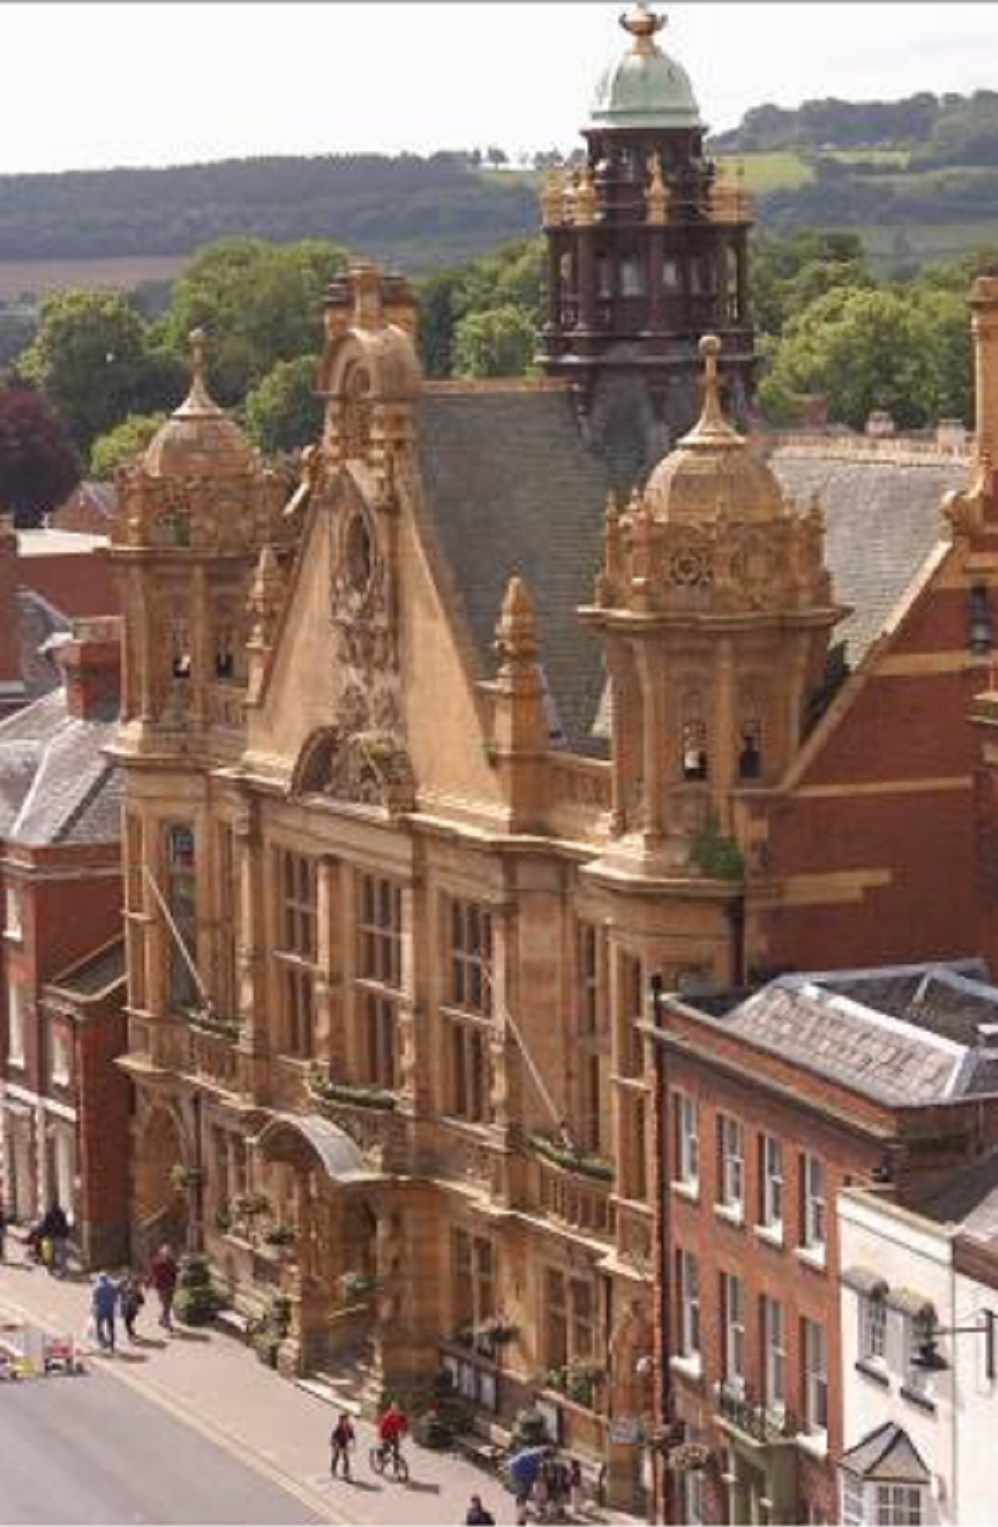 An inquest was held at Hereford Town Hall into the death of Anthony Miles Wynn